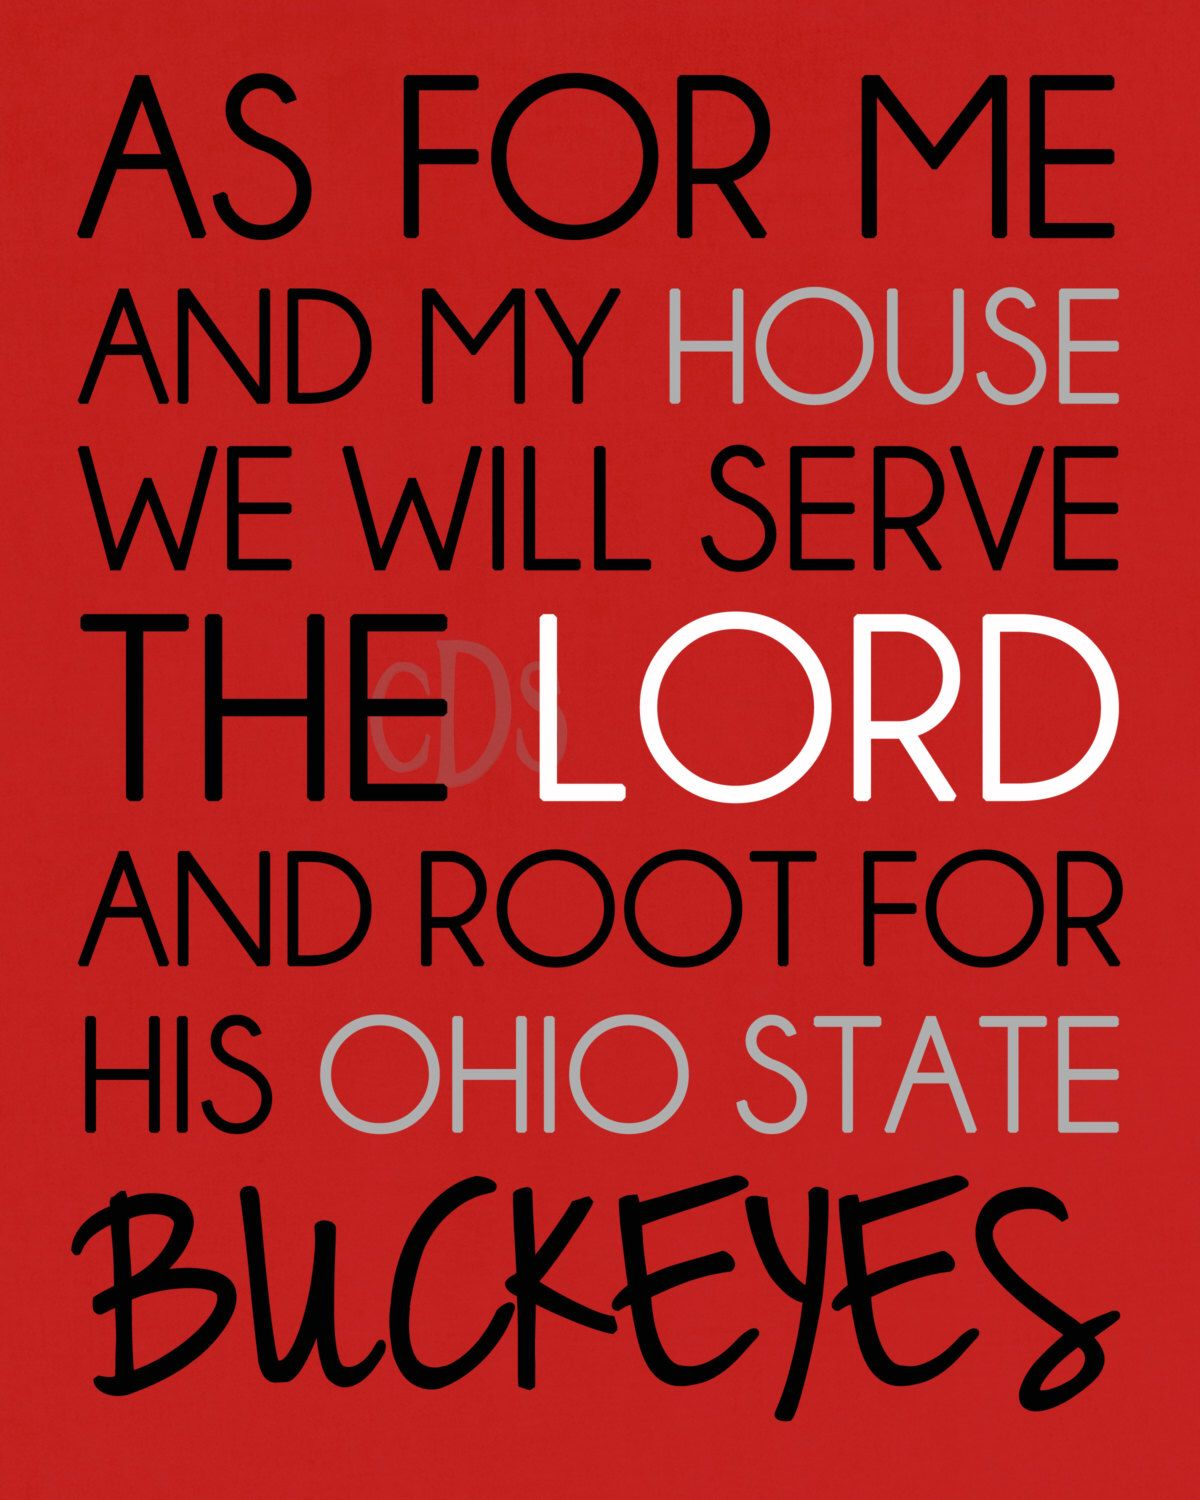 Items similar to As for me and my house we will serve the Lord and root for His Ohio State Buckeyes: 8x10 on Etsy